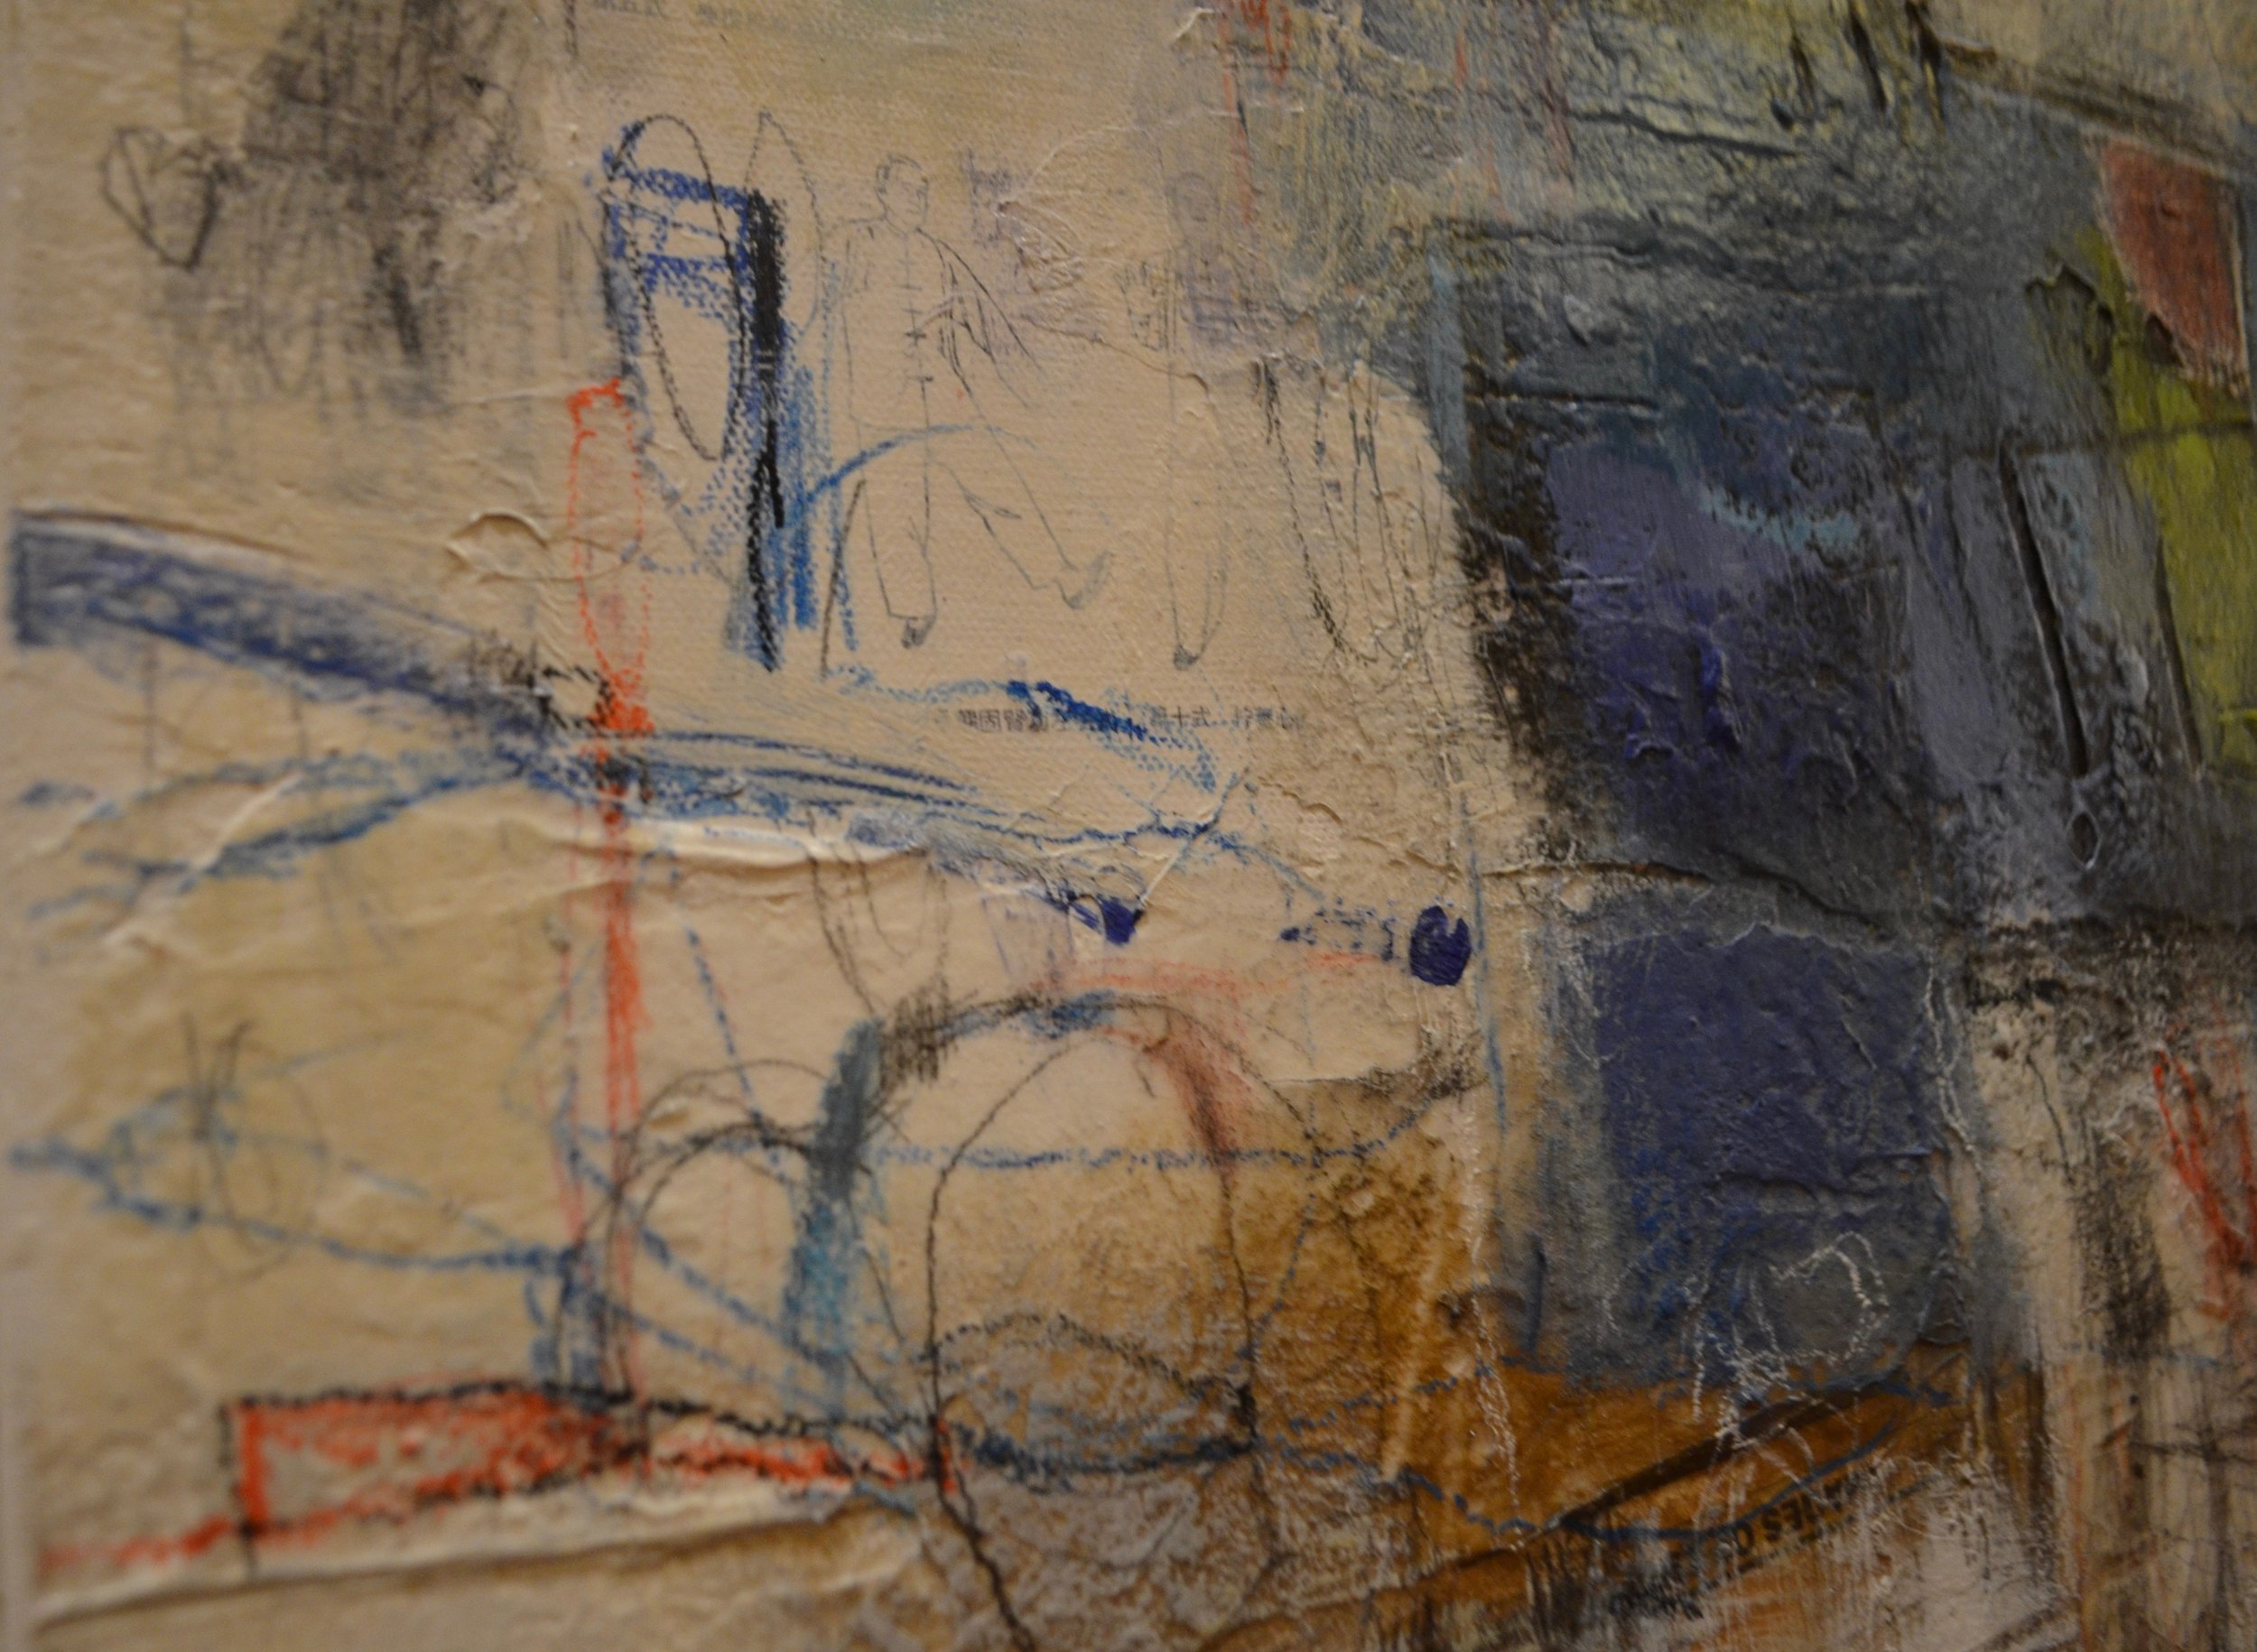 mixed media on canvas by tamar kander, human touch, additional images showing texture